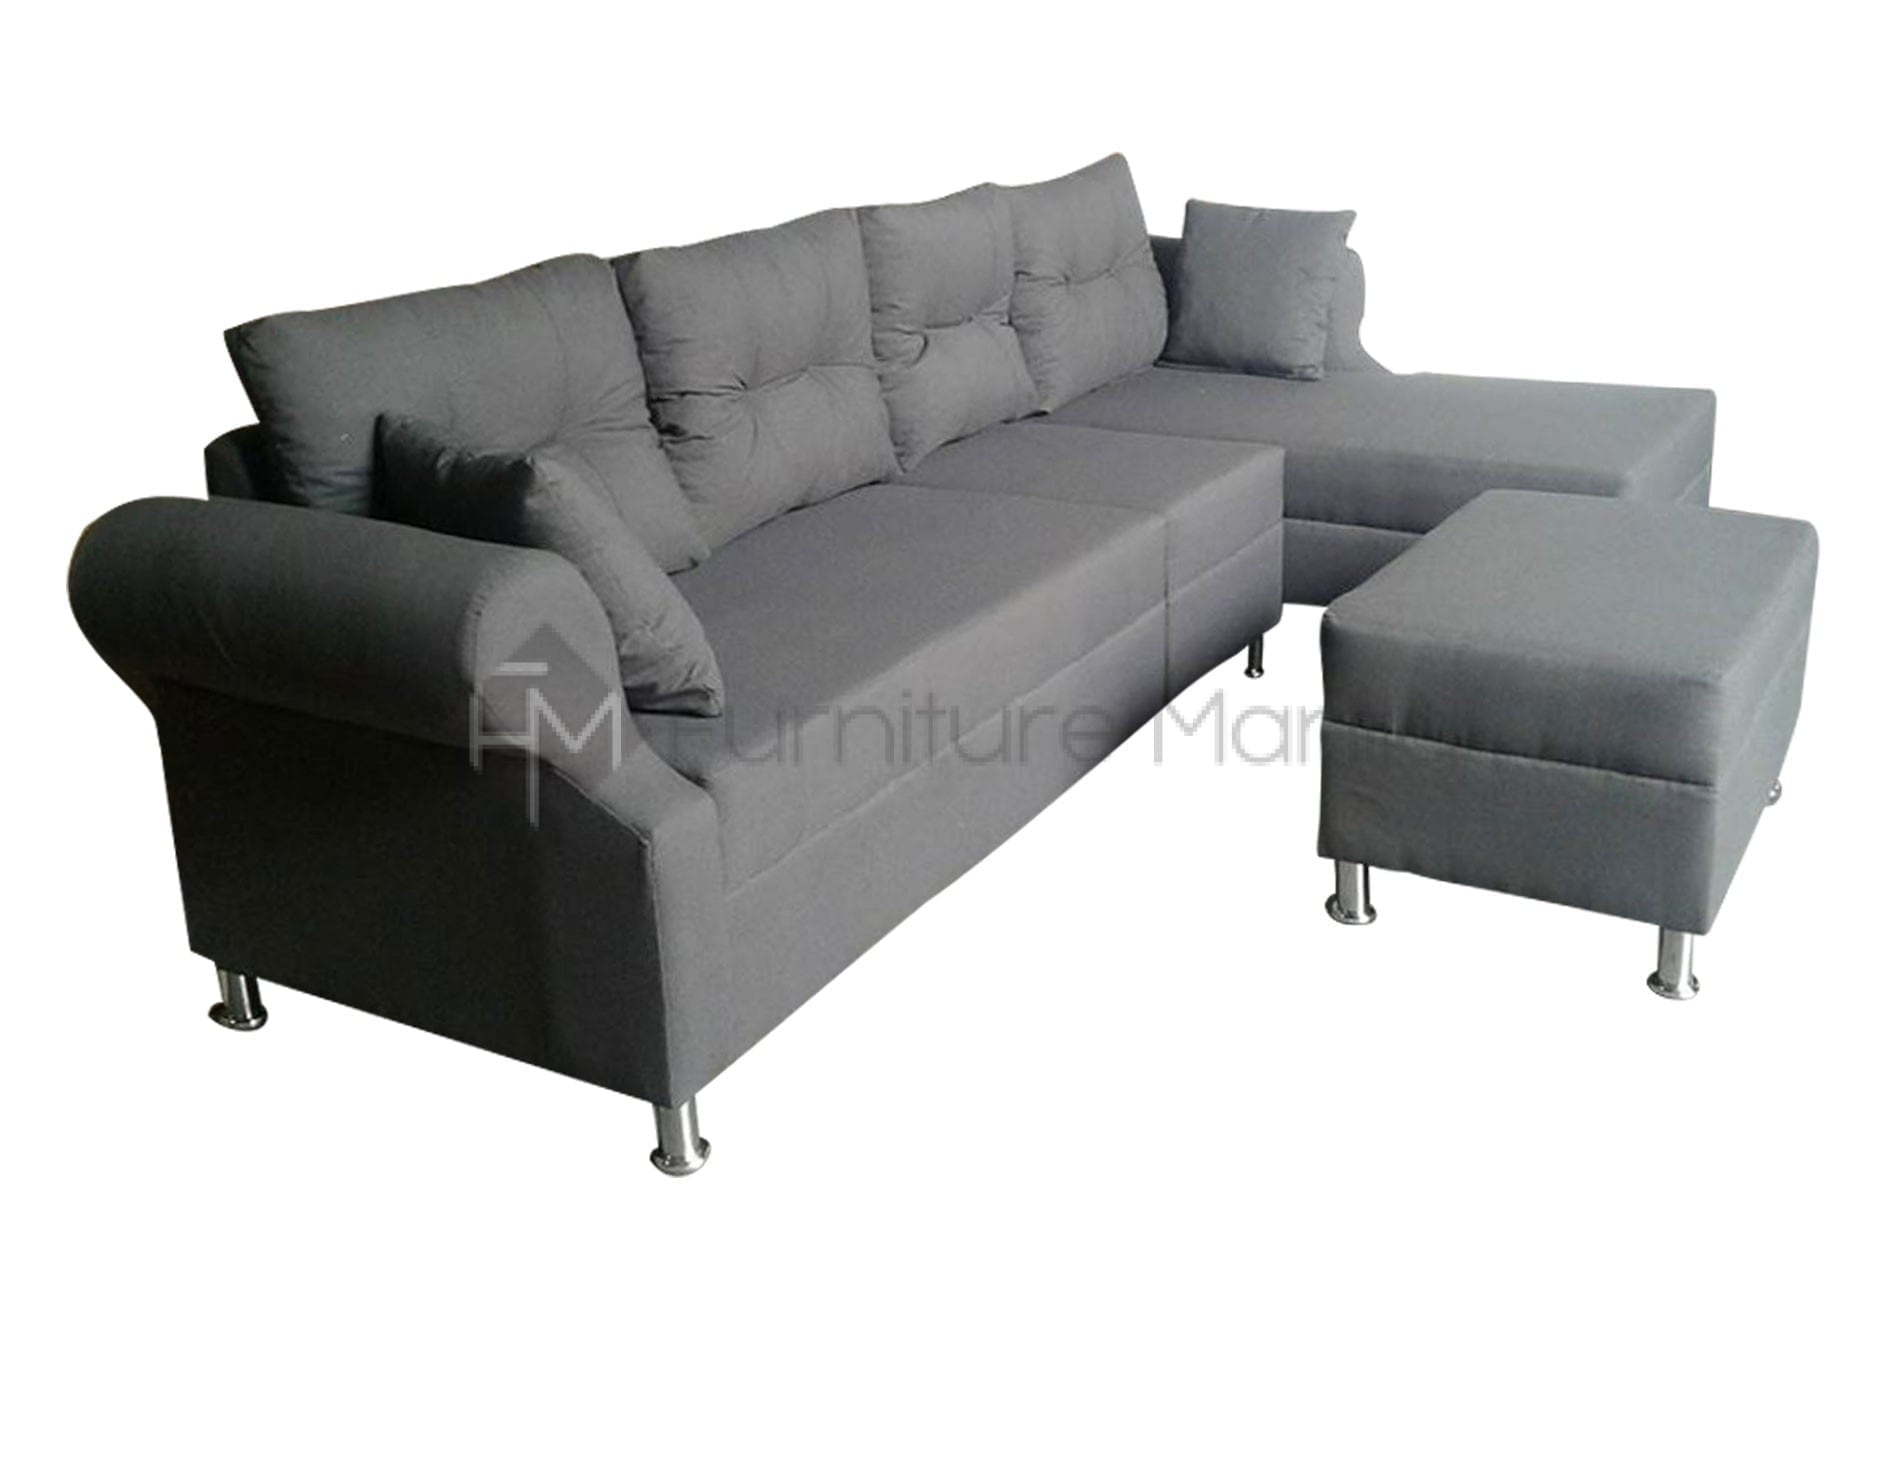 l shaped sofa for office slipcovers beds ariane with stool home and furniture